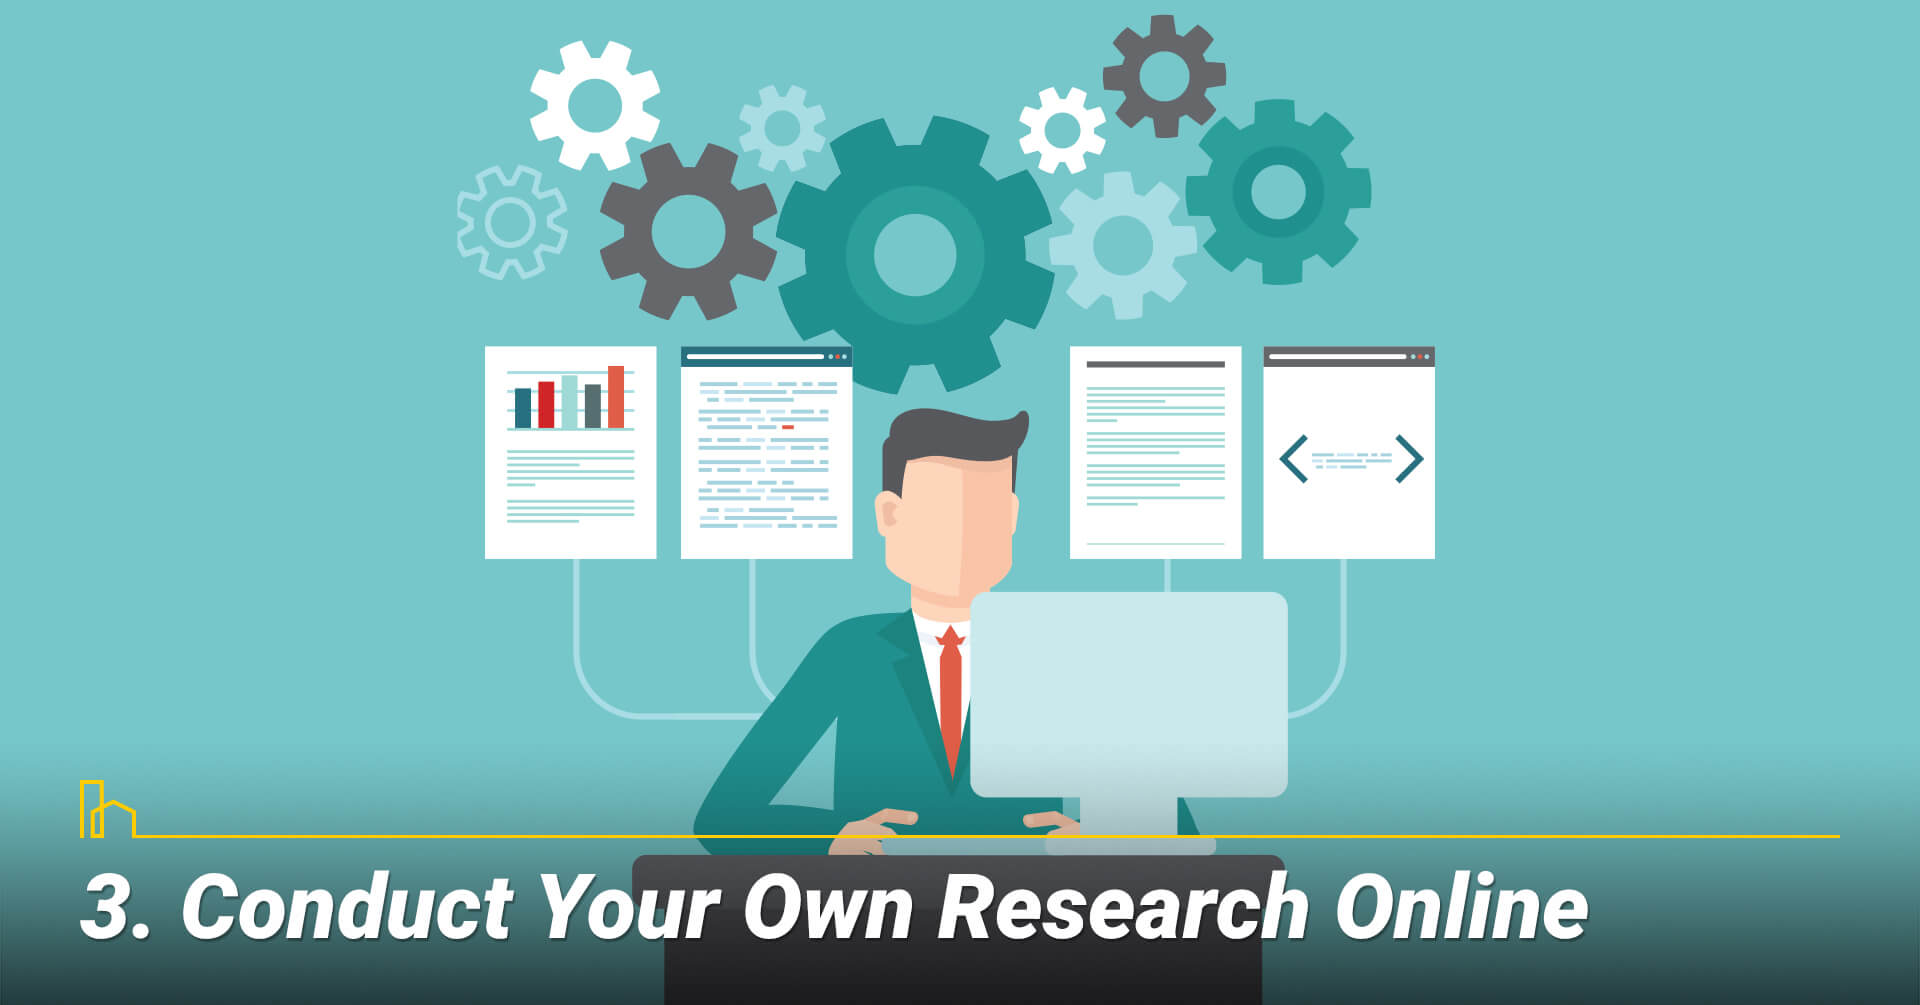 Conduct Your Own Research Online, do your own homework